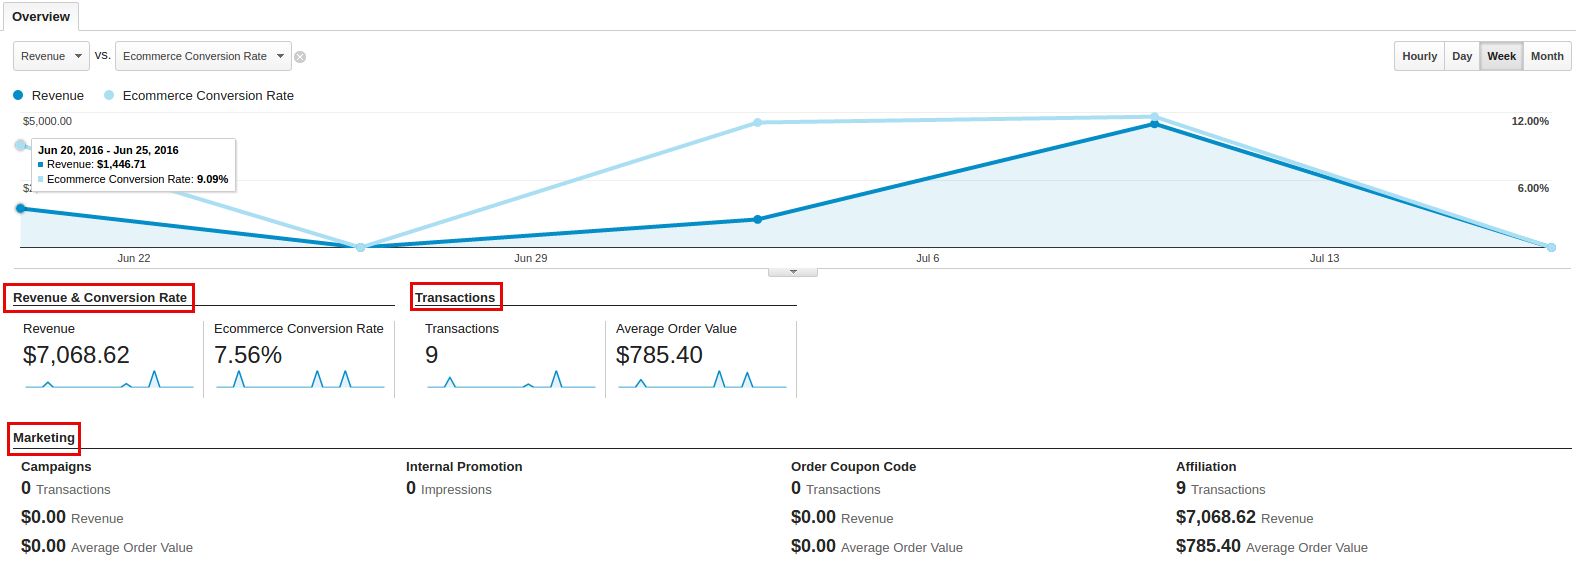 google-analytics-enhanced-overview.png?1